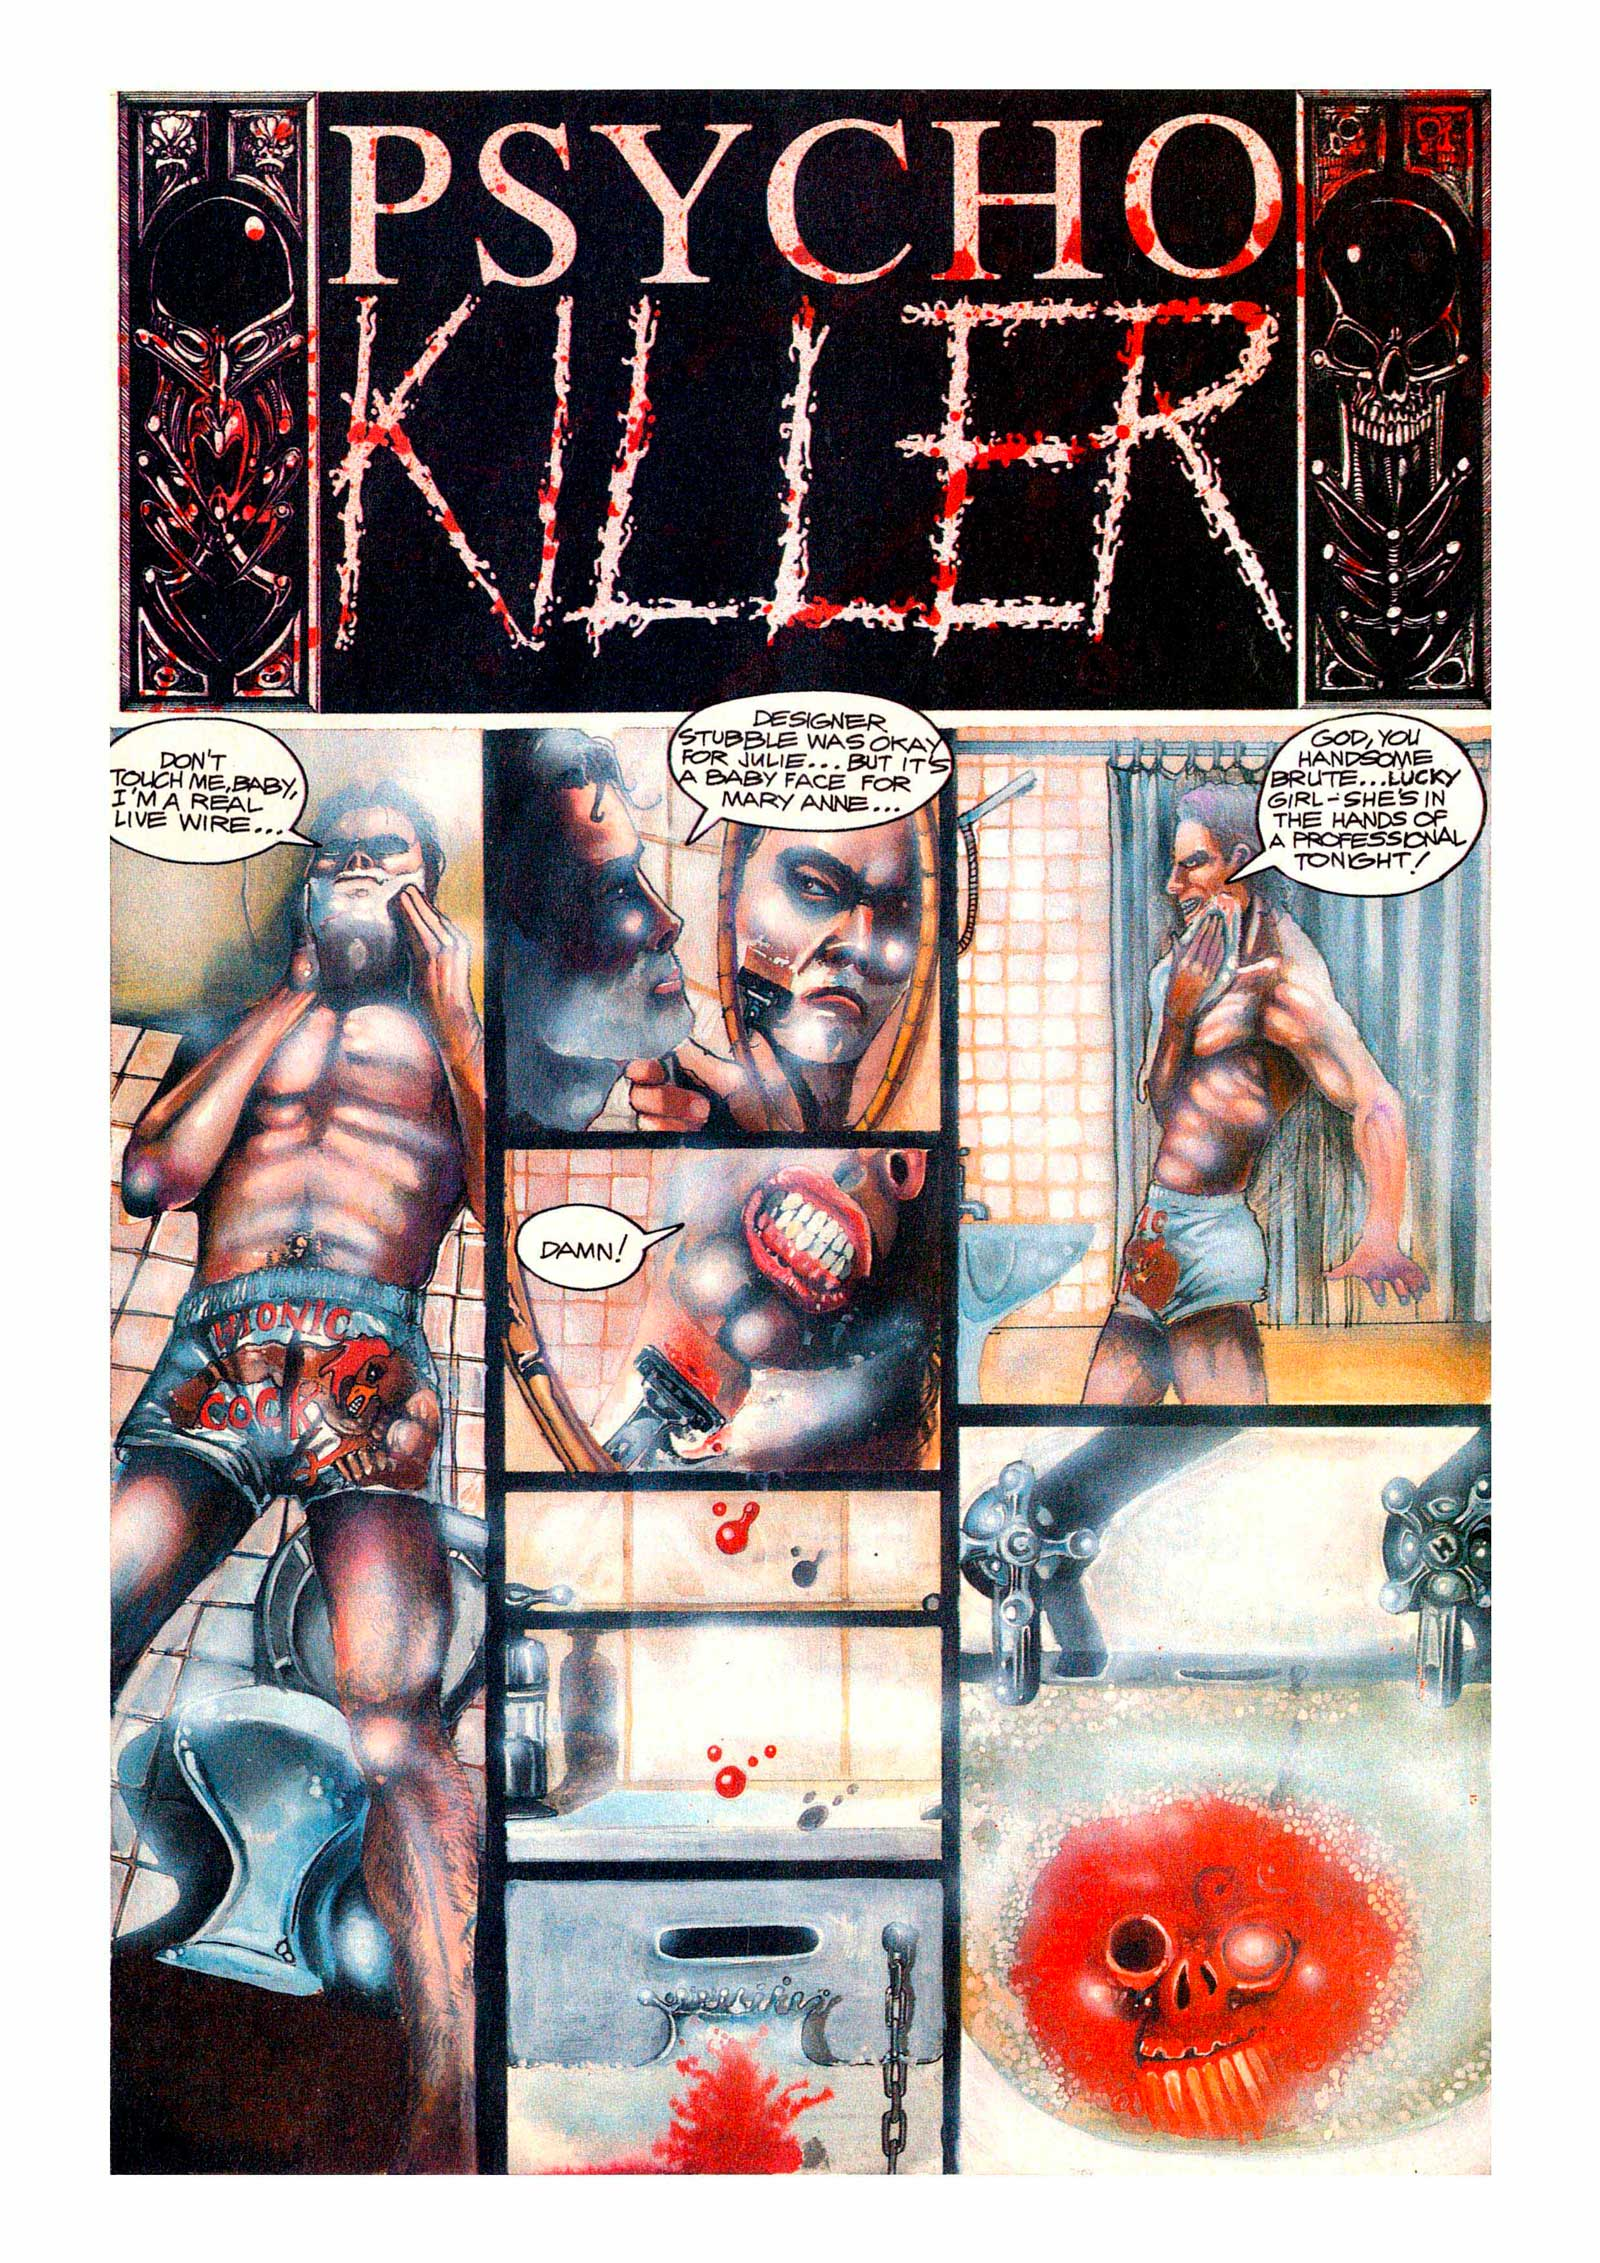 PsychoKiller, written by Pat Mills, co-written with Tony Skinner, with superb fully painted artwork by Dave Kendall, is the first Millsverse digital title.